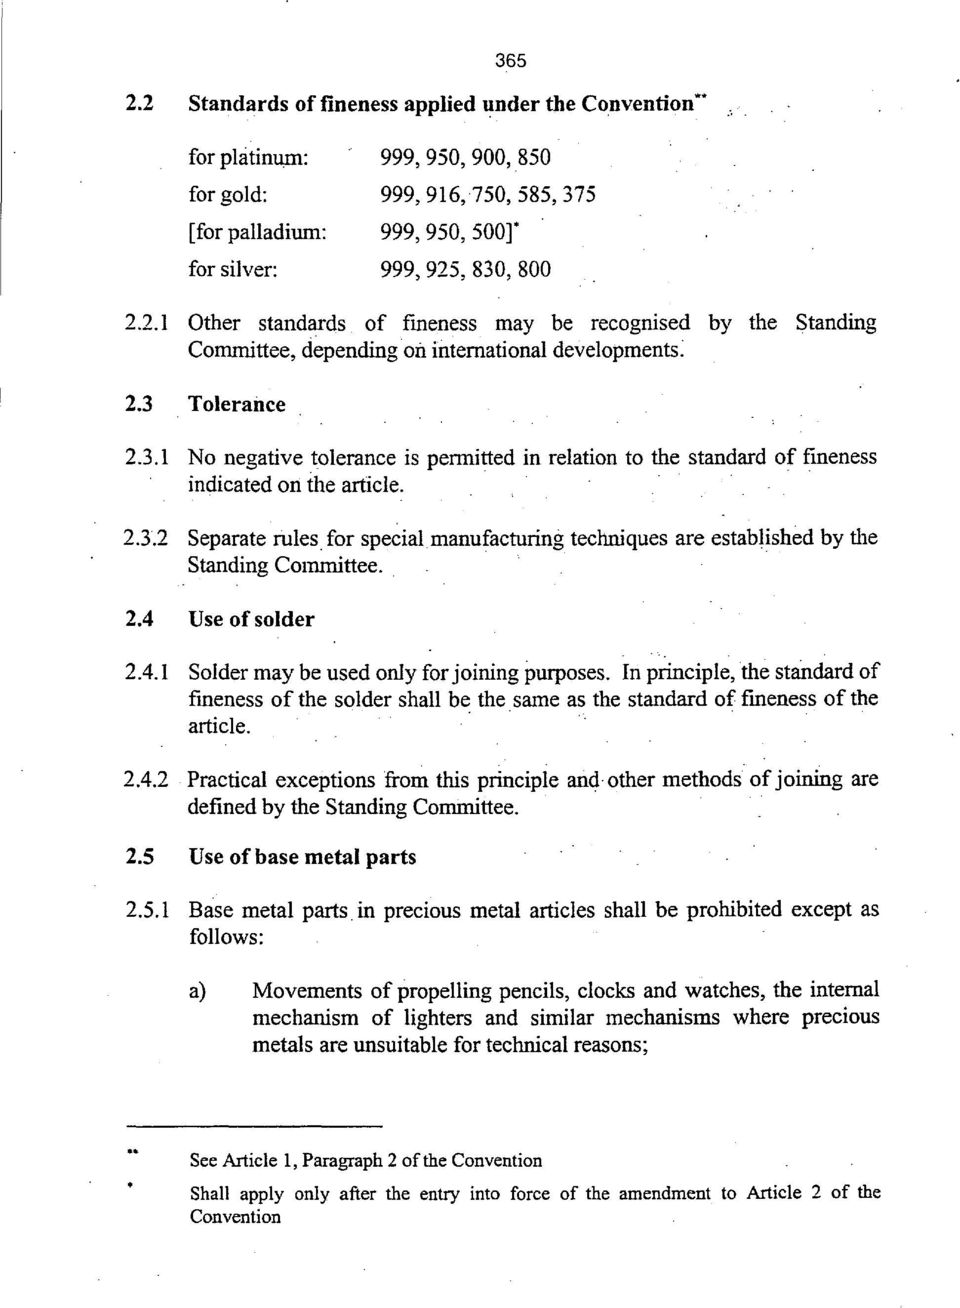 2.4 Use of solder 2.4.1 Solder may be used only for joining purposes. In principle, the standard of fineness of the solder shall be the same as the standard of fineness of the article. 2.4.2 Practical exceptions from this principle and other methods of joining are defined by the Standing Committee.